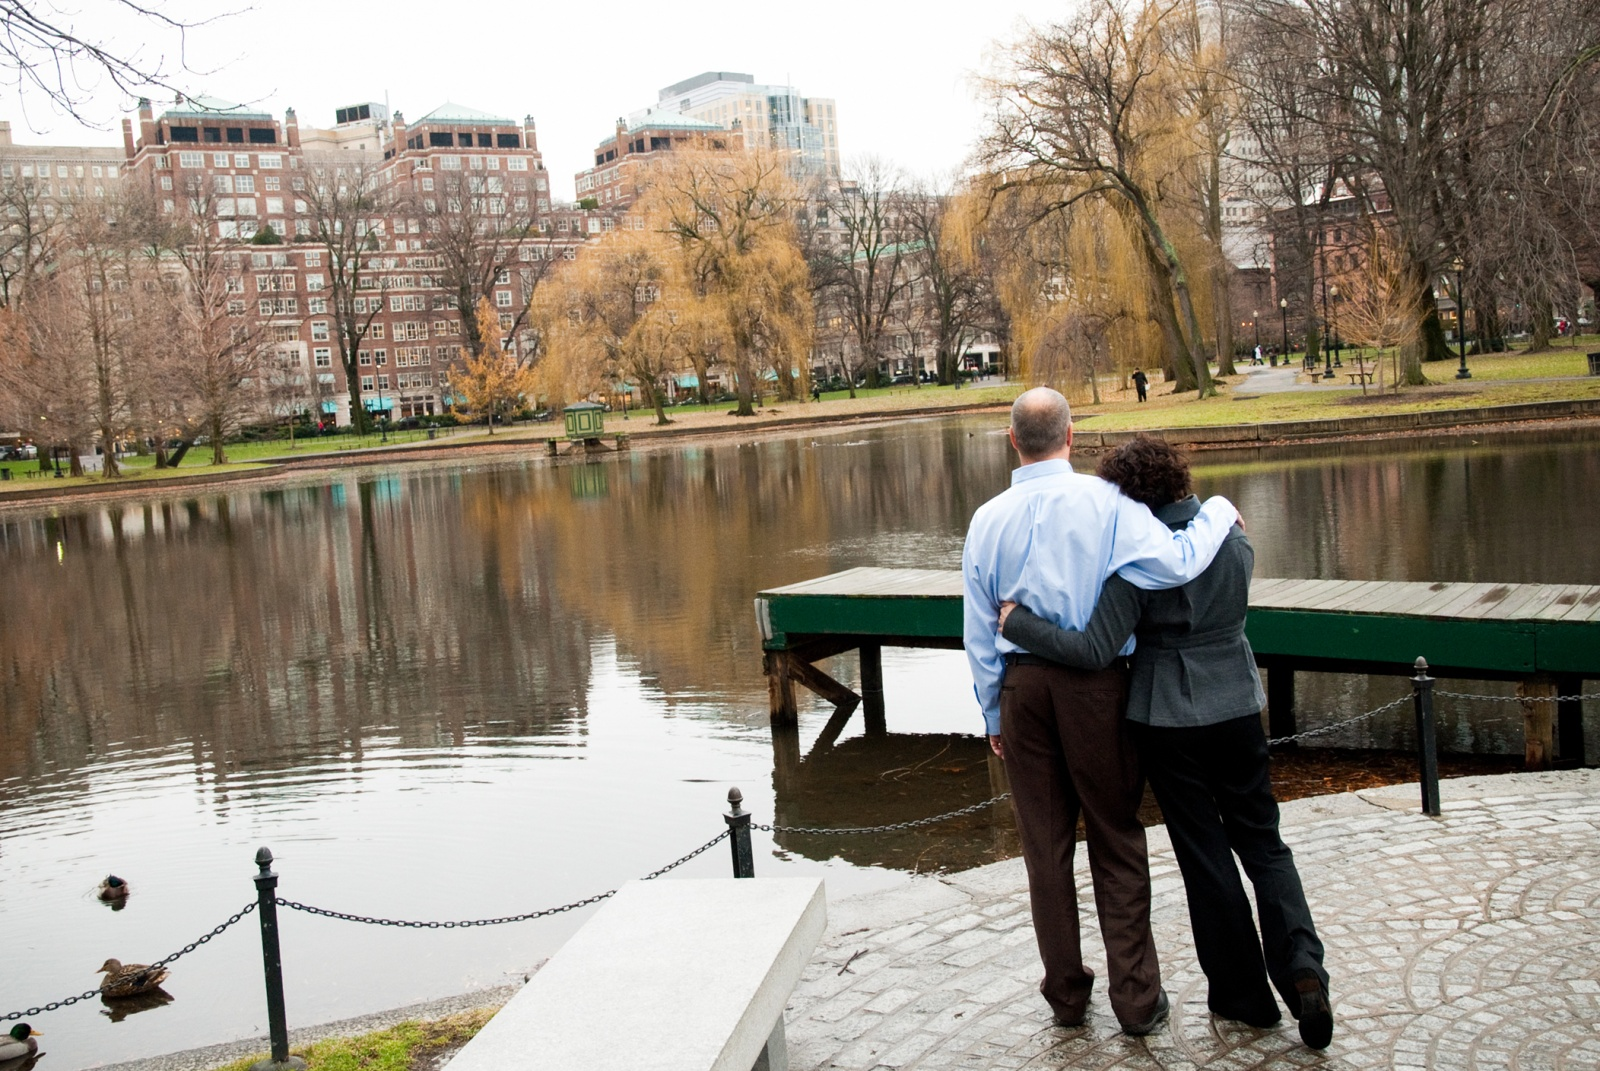 Couple in Boston Common, Boston, Massachusetts